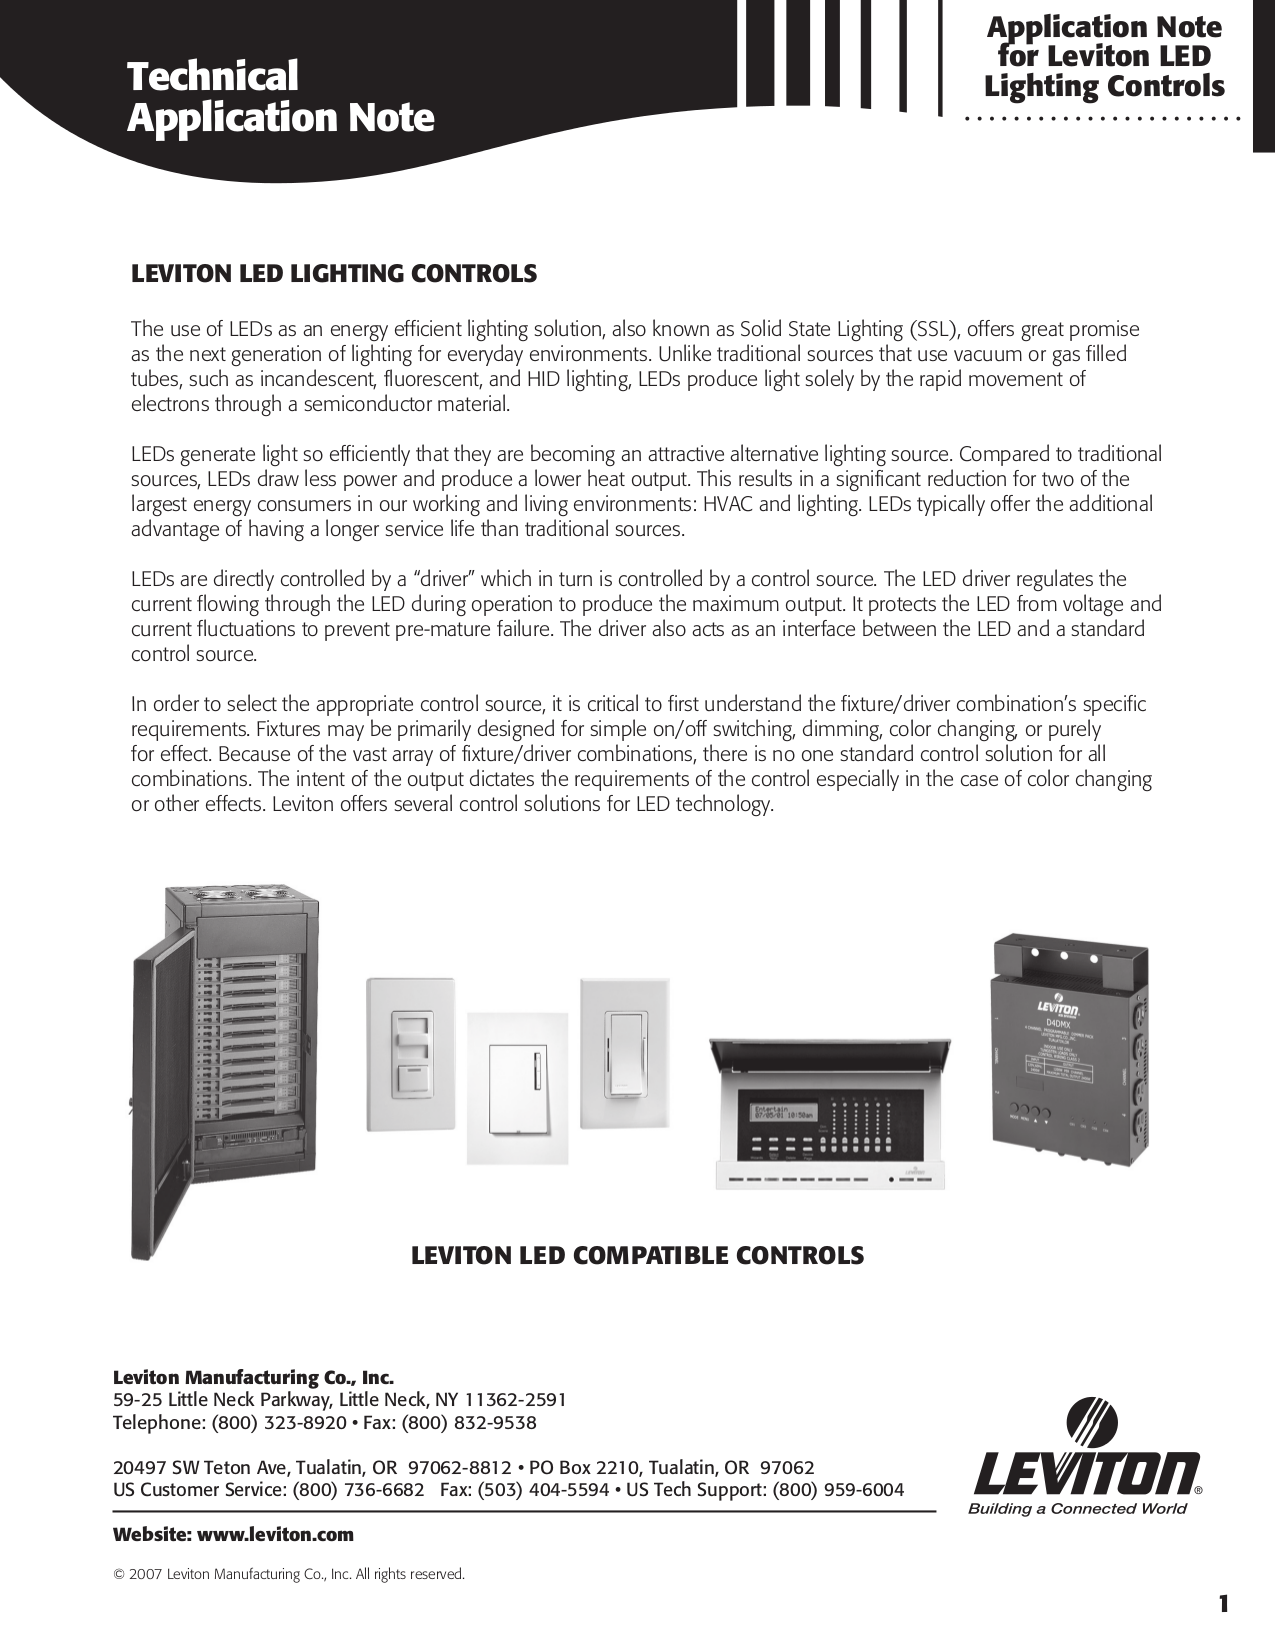 Awesome Leviton Manufacturing Company Ideas - Electrical Circuit ...